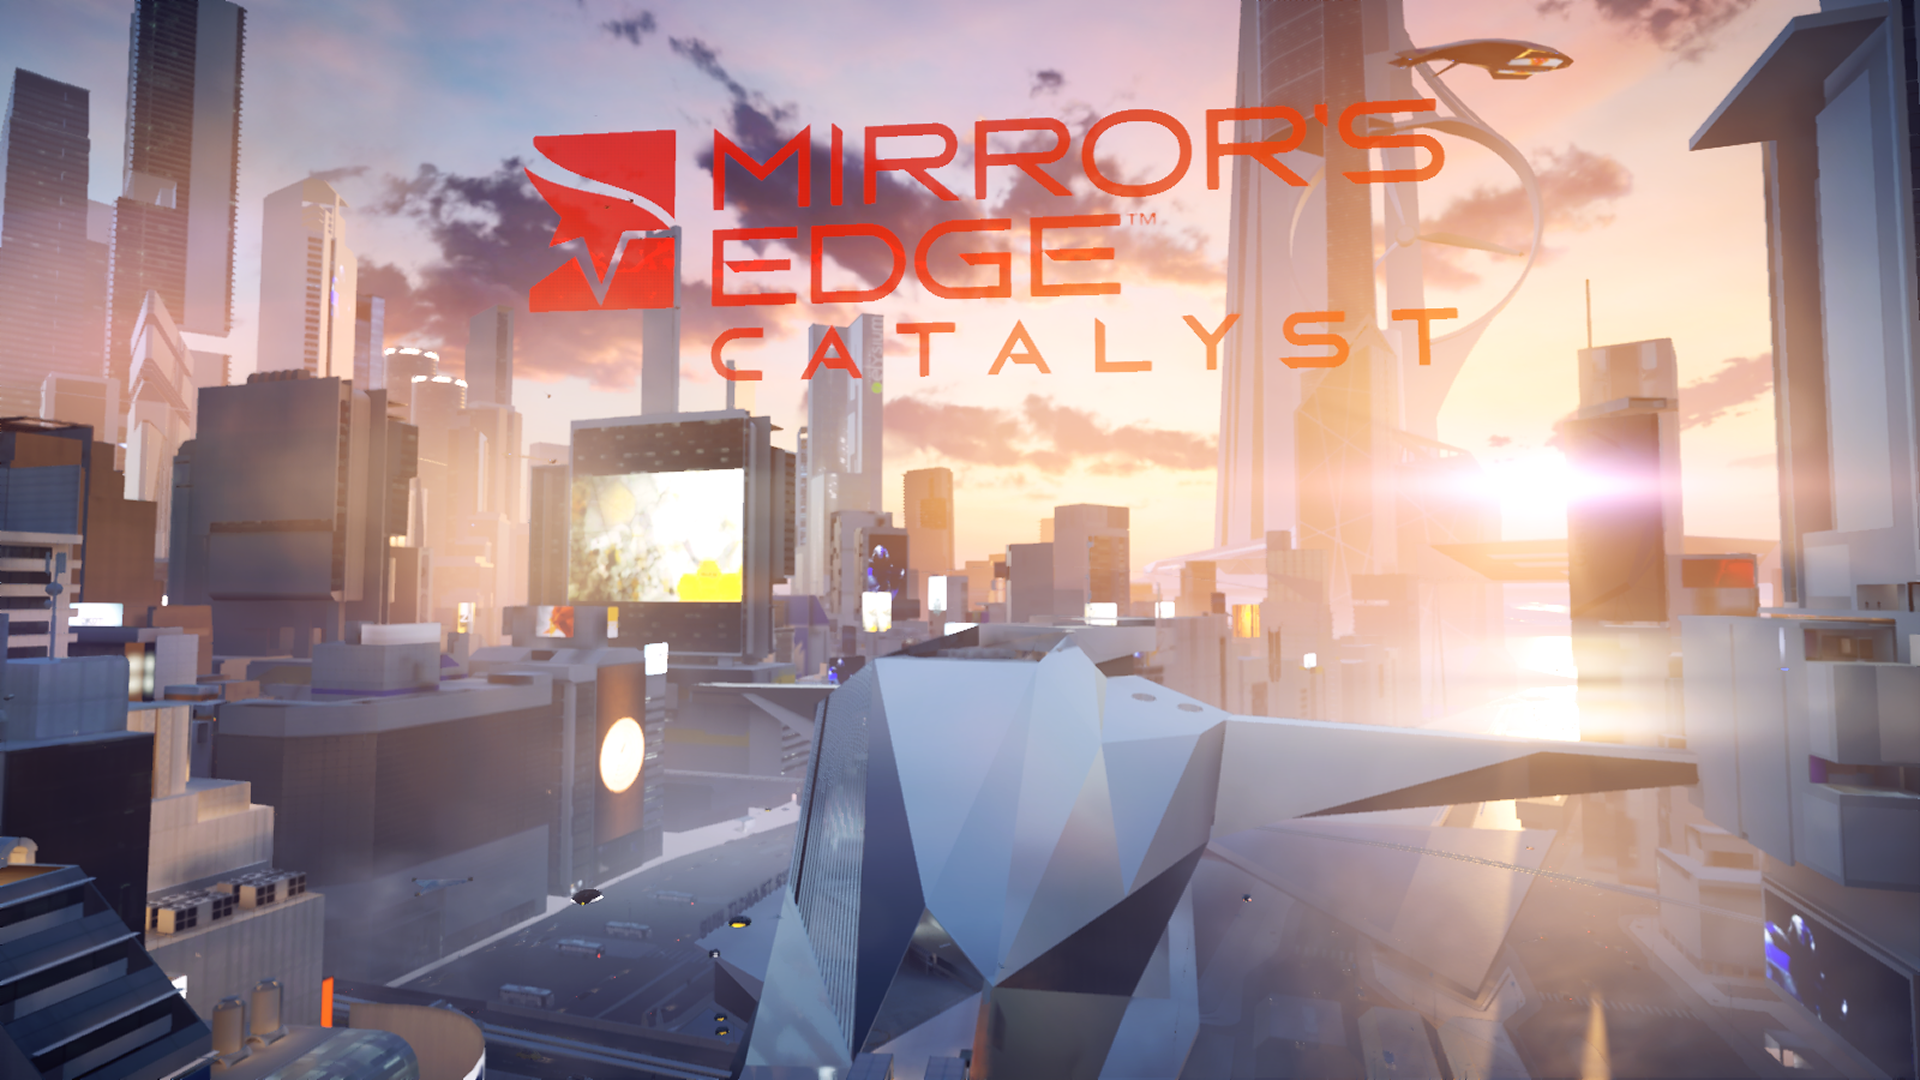 mirrors-edge-catalyst-review-02